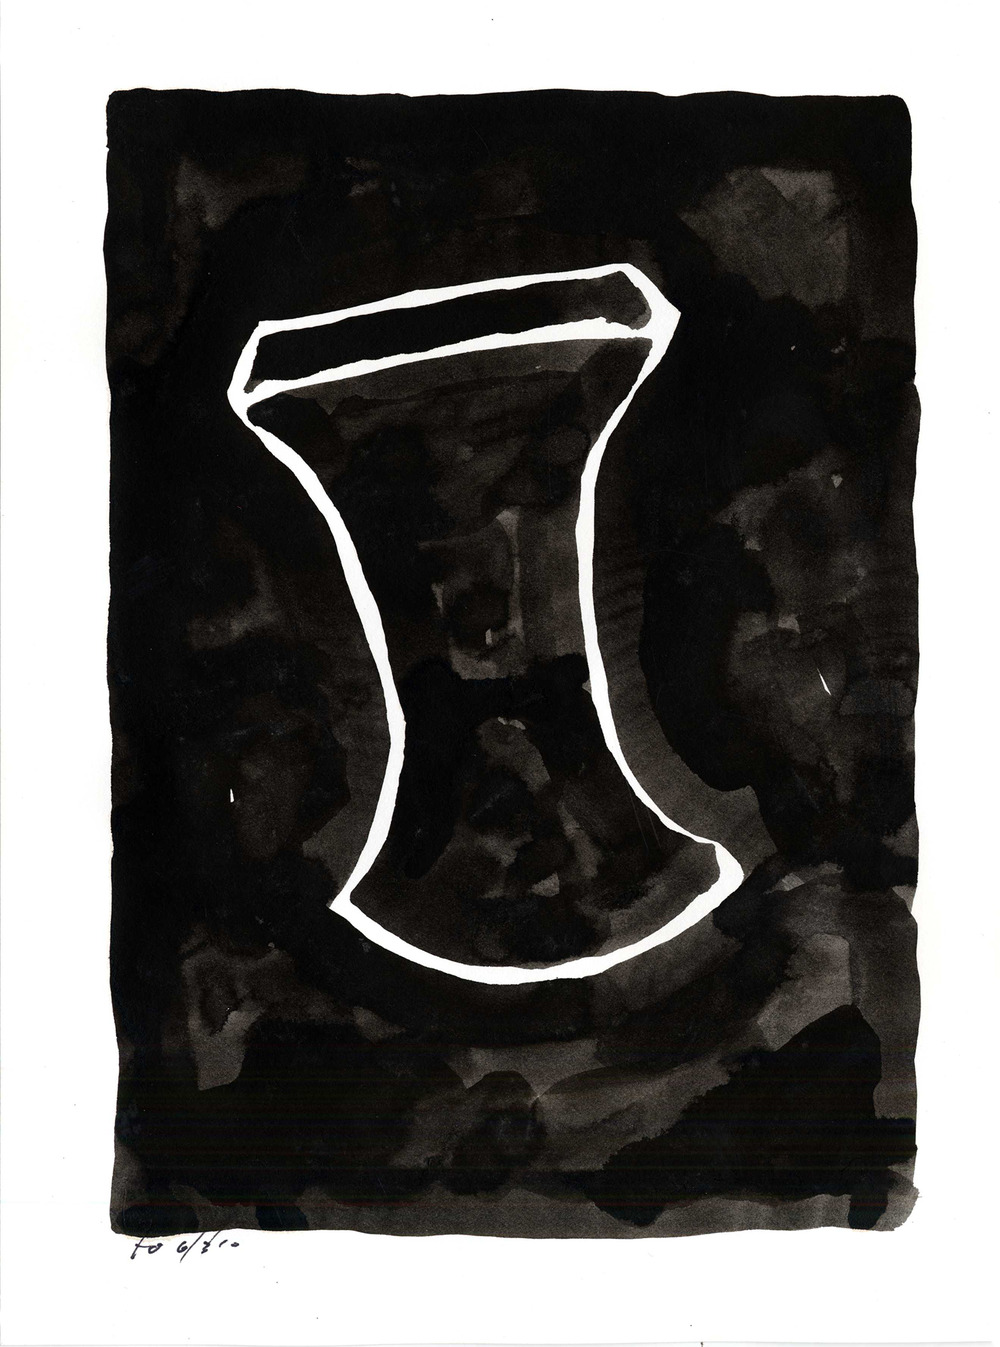 ii020  , 2010, india ink on paper, 12 x 9 in